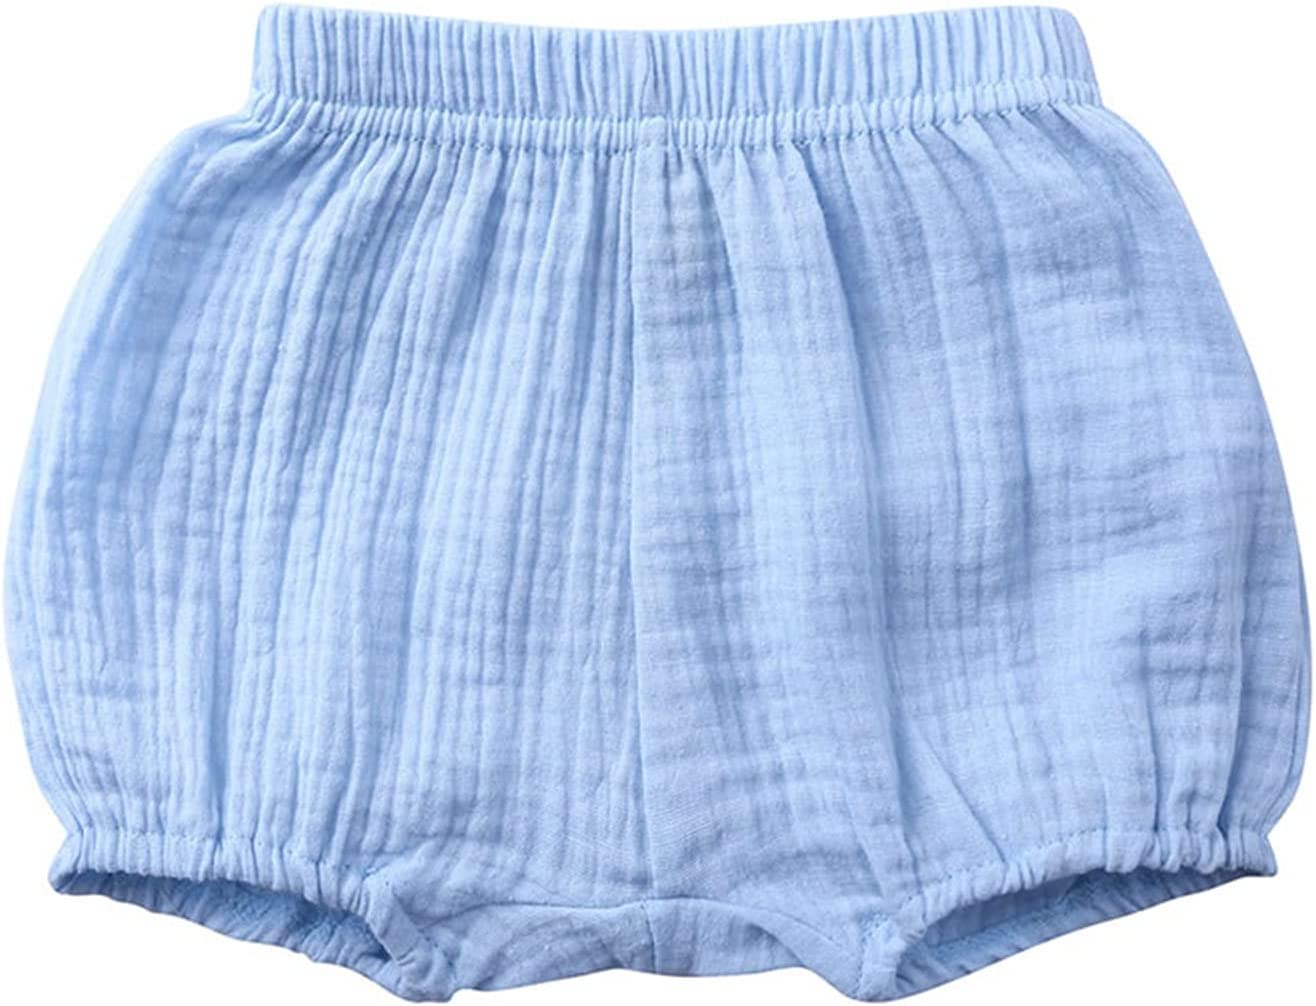 Summer Very popular Kids Boys Shorts Solid Girl Line Baby Cotton Color Attention brand